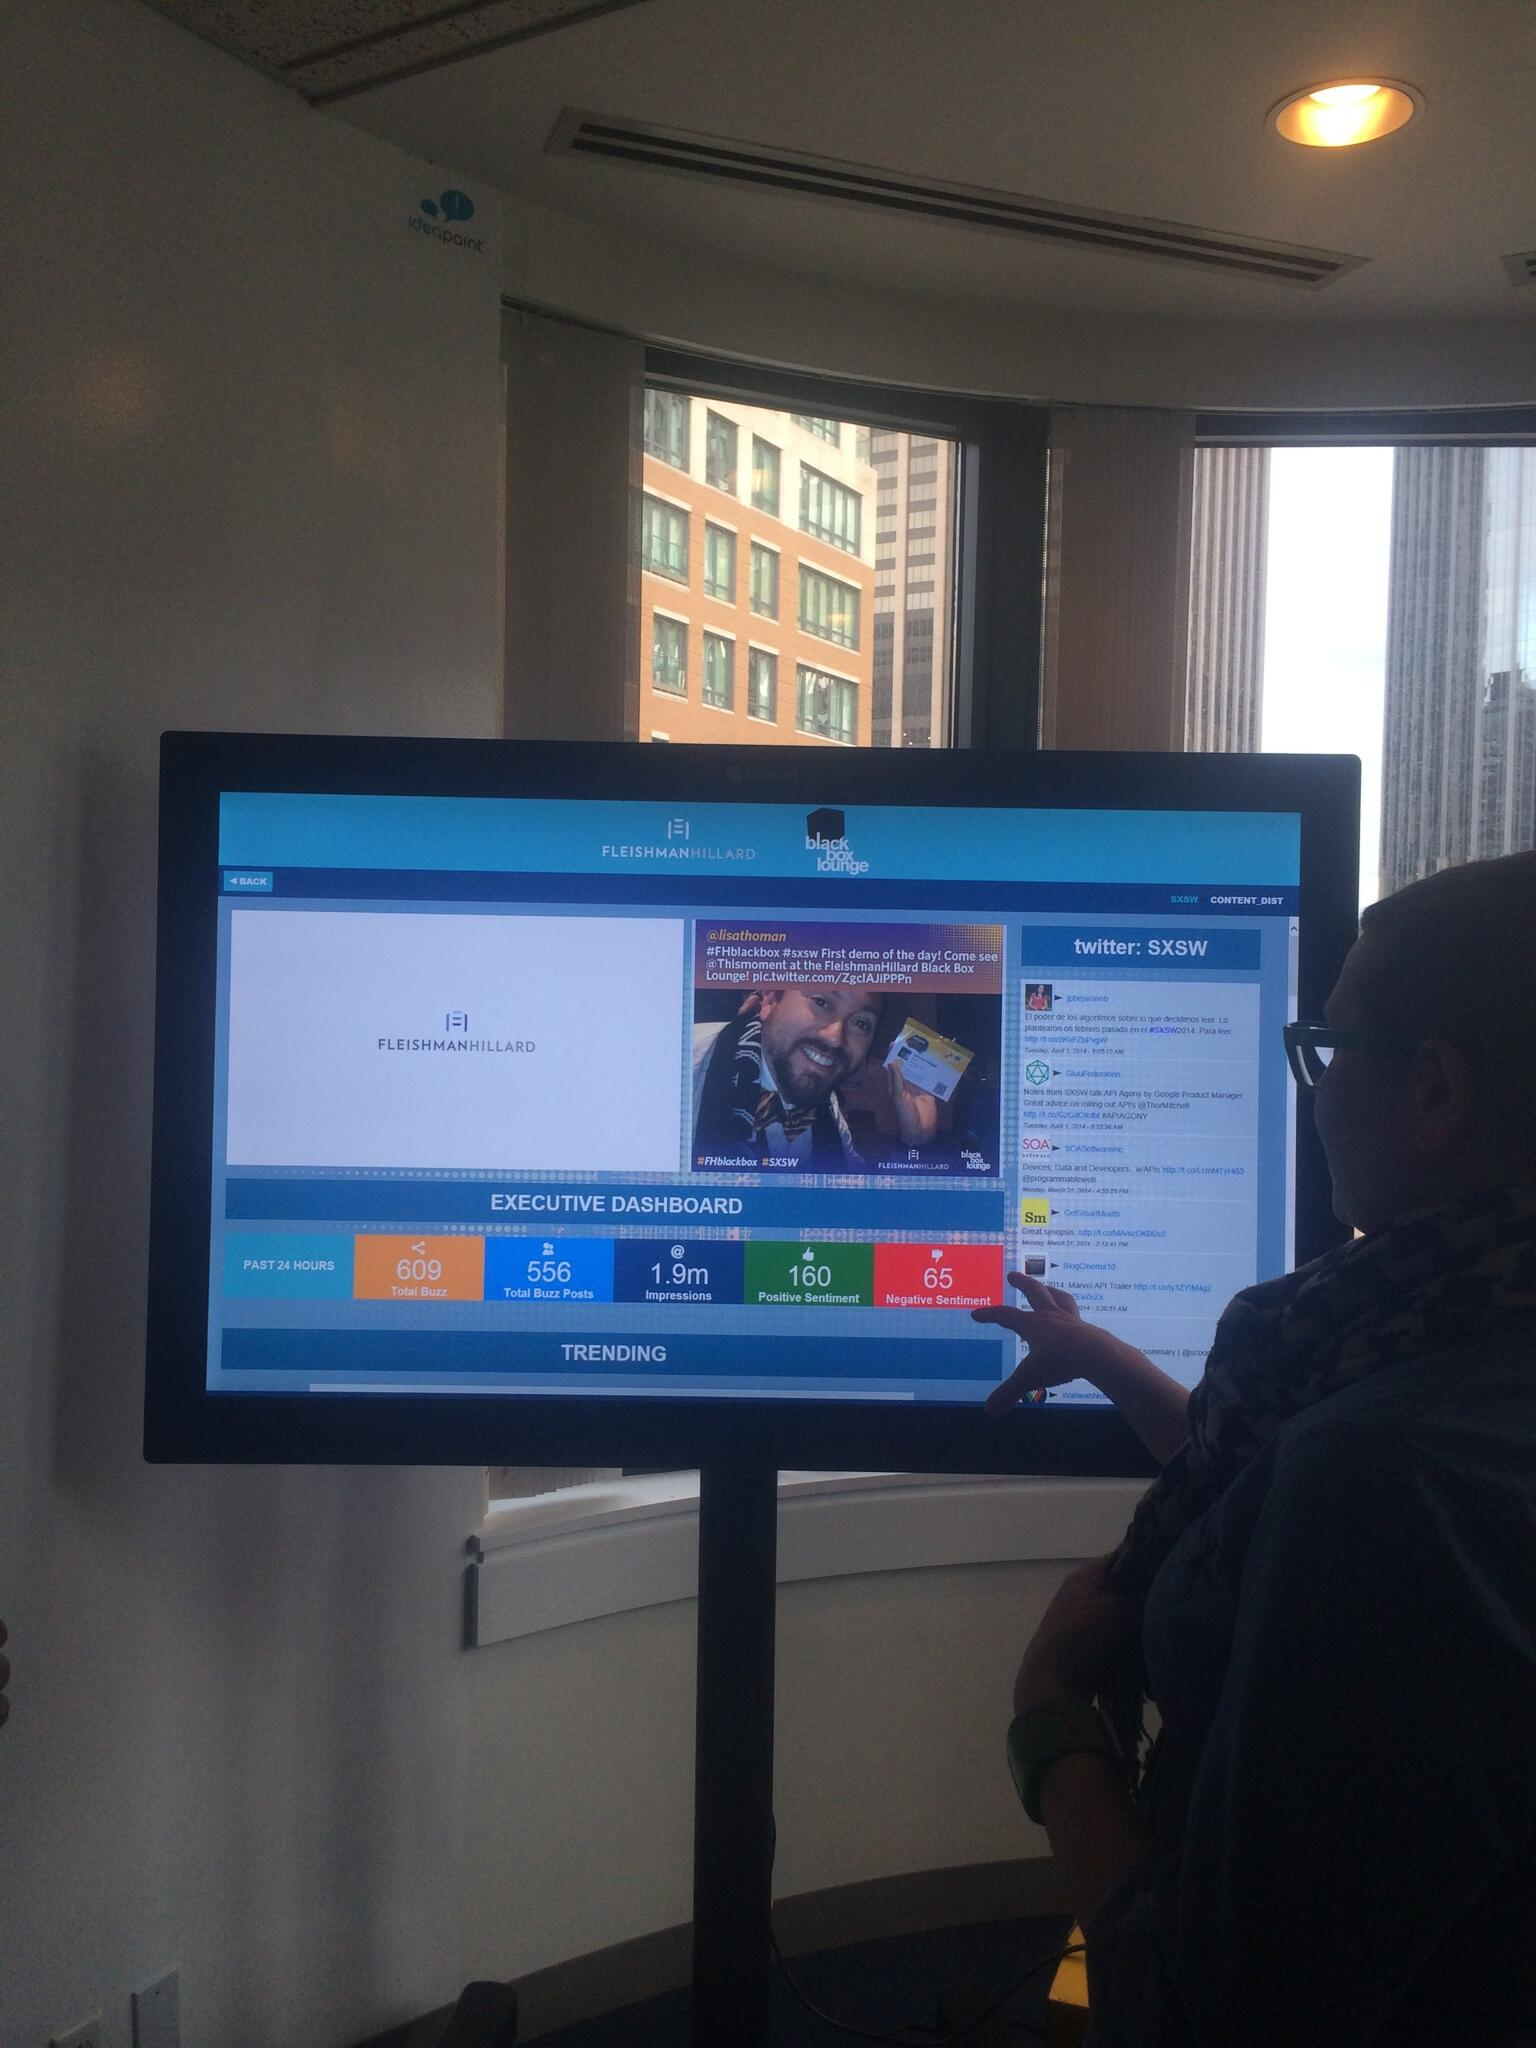 RT @djenningspr: Checking out a demo of #FHBlackBox at #Austin2Boston http://t.co/HVzmljqb63